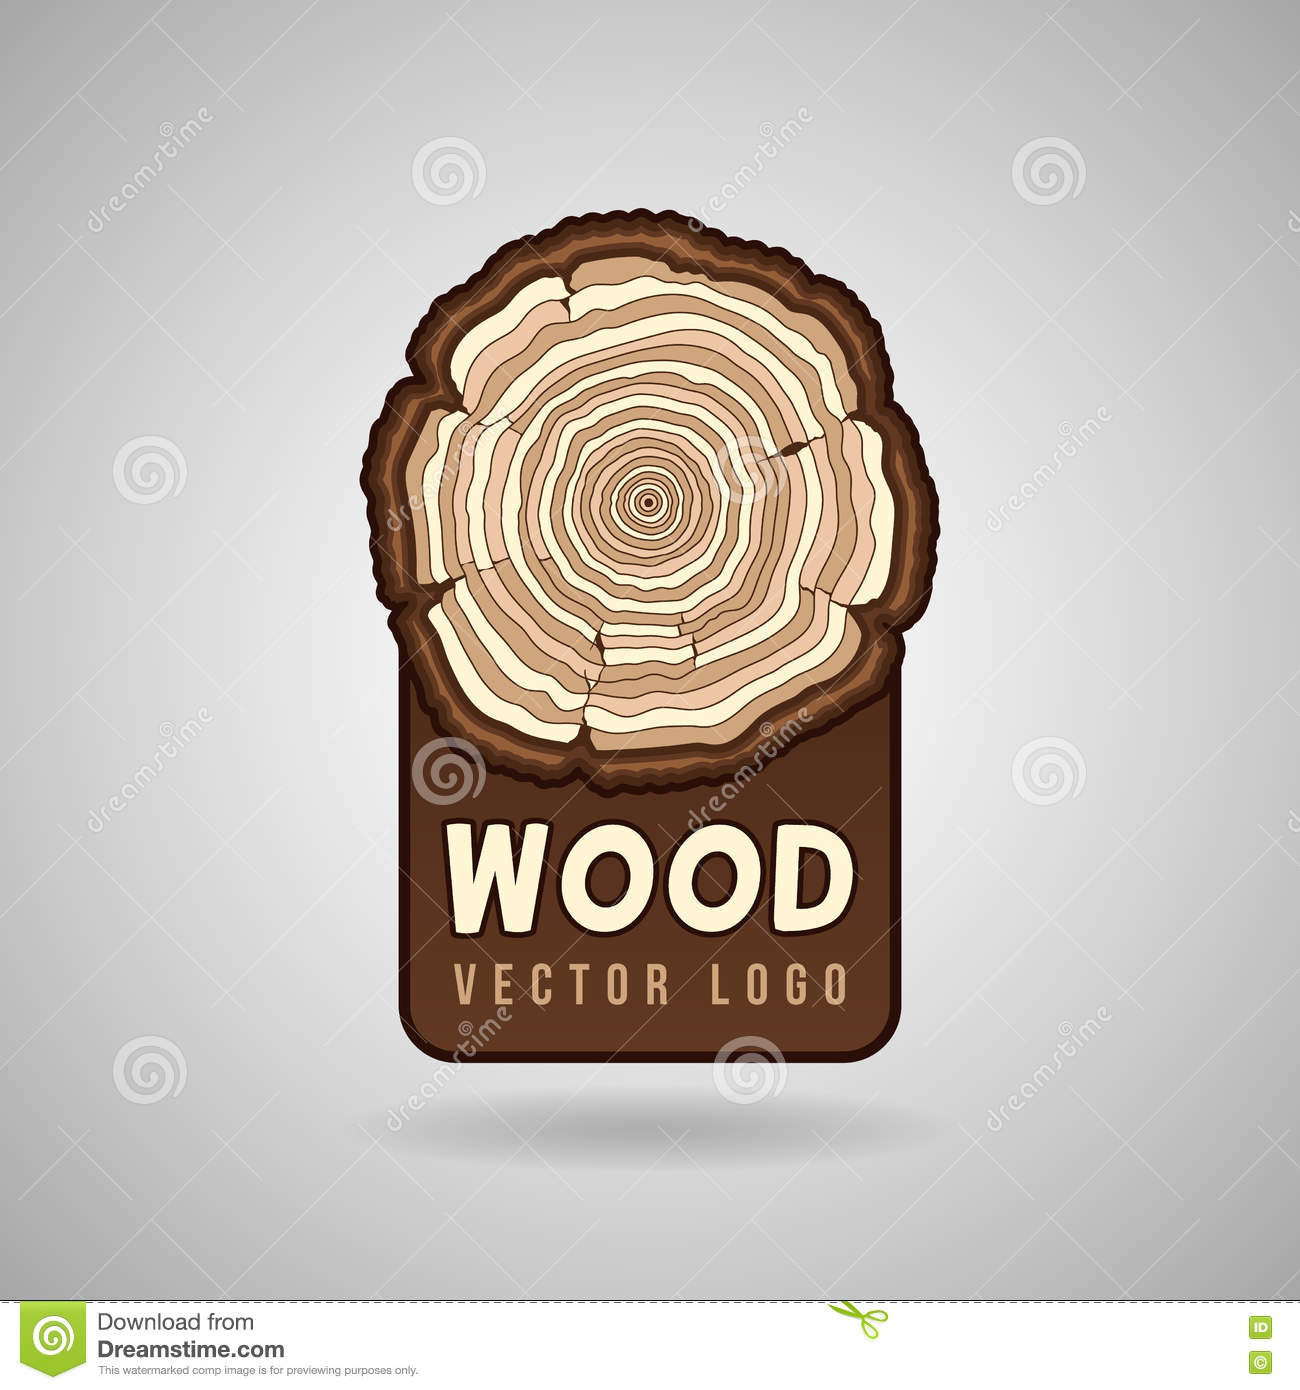 Cross Section Of The Trunk With Tree Rings Wood Sign Icon